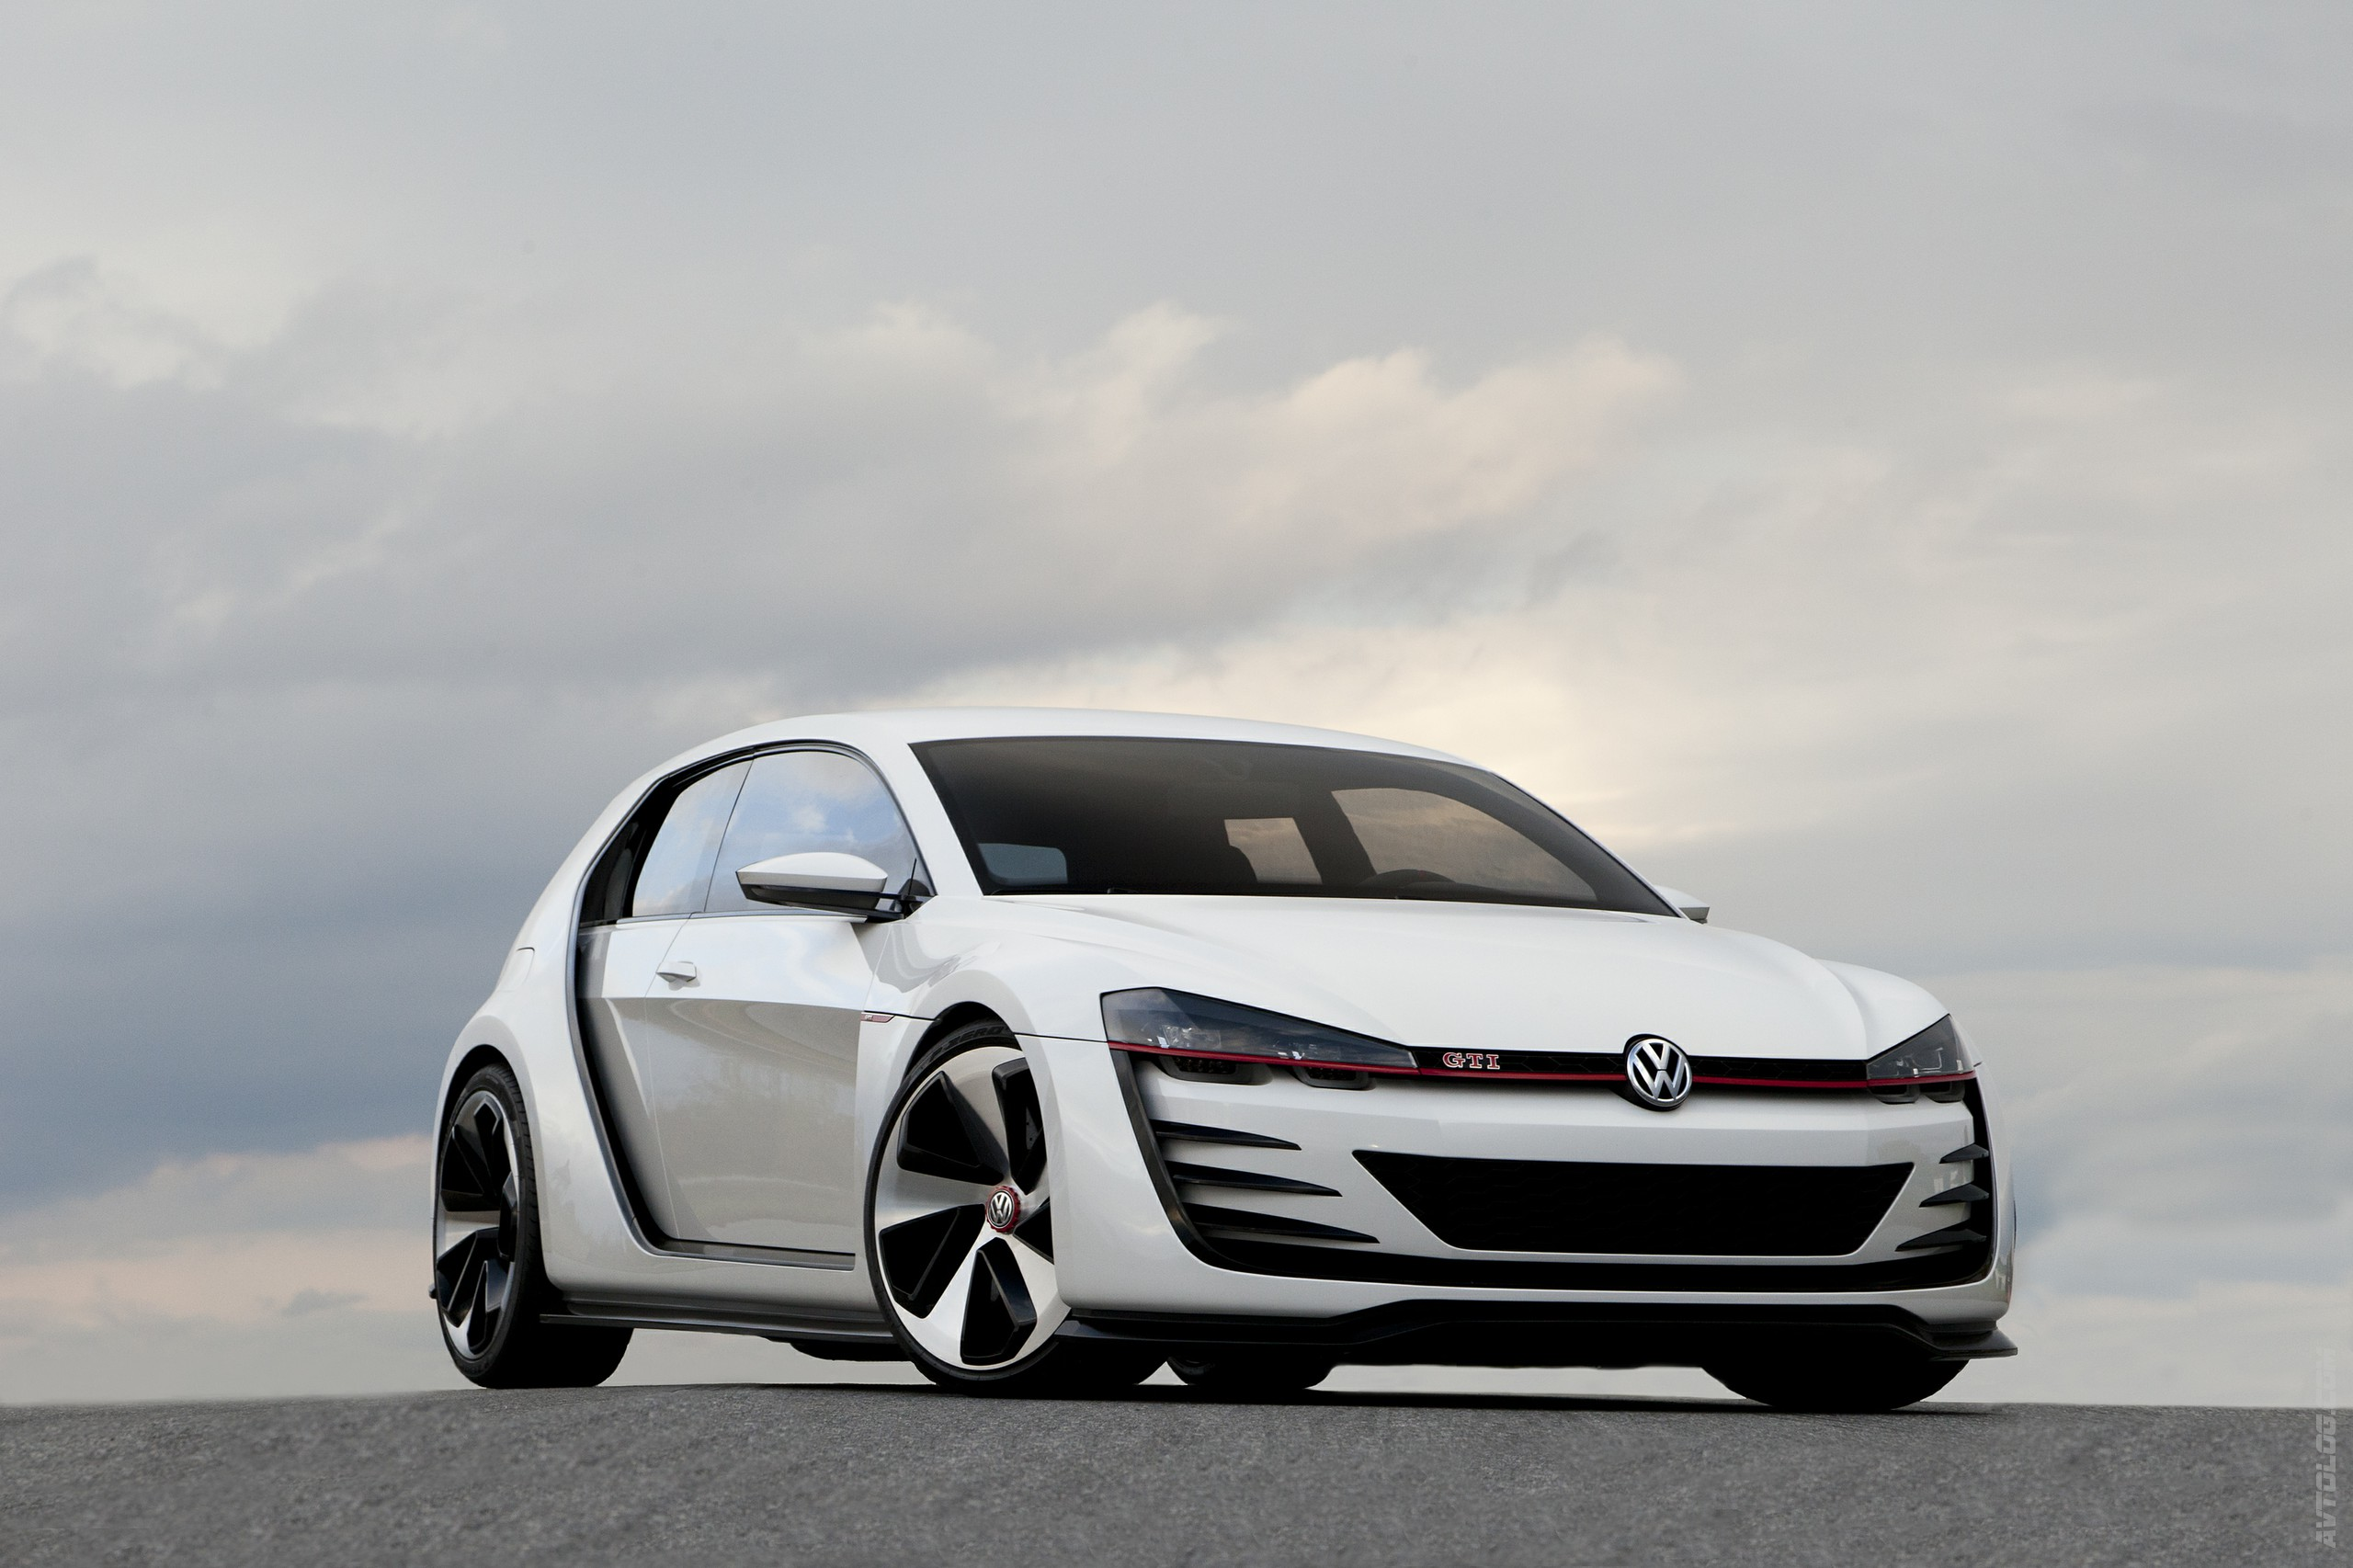 2013 Volkswagen Design Vision GTI Concept photo - 2